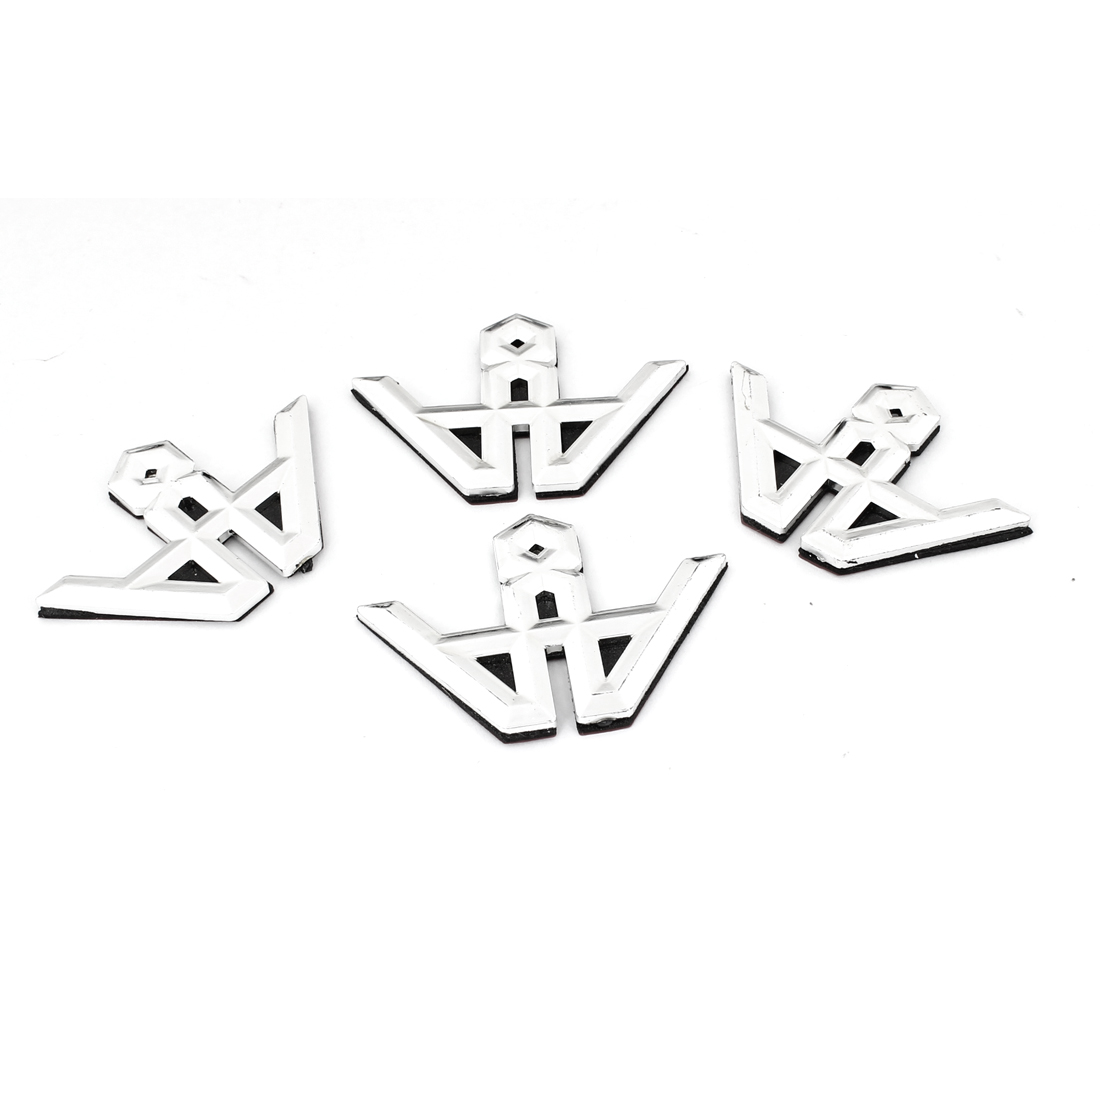 4PCS Silver Tone Plastic Self Adhesive Badge Stickers for Car Automobile